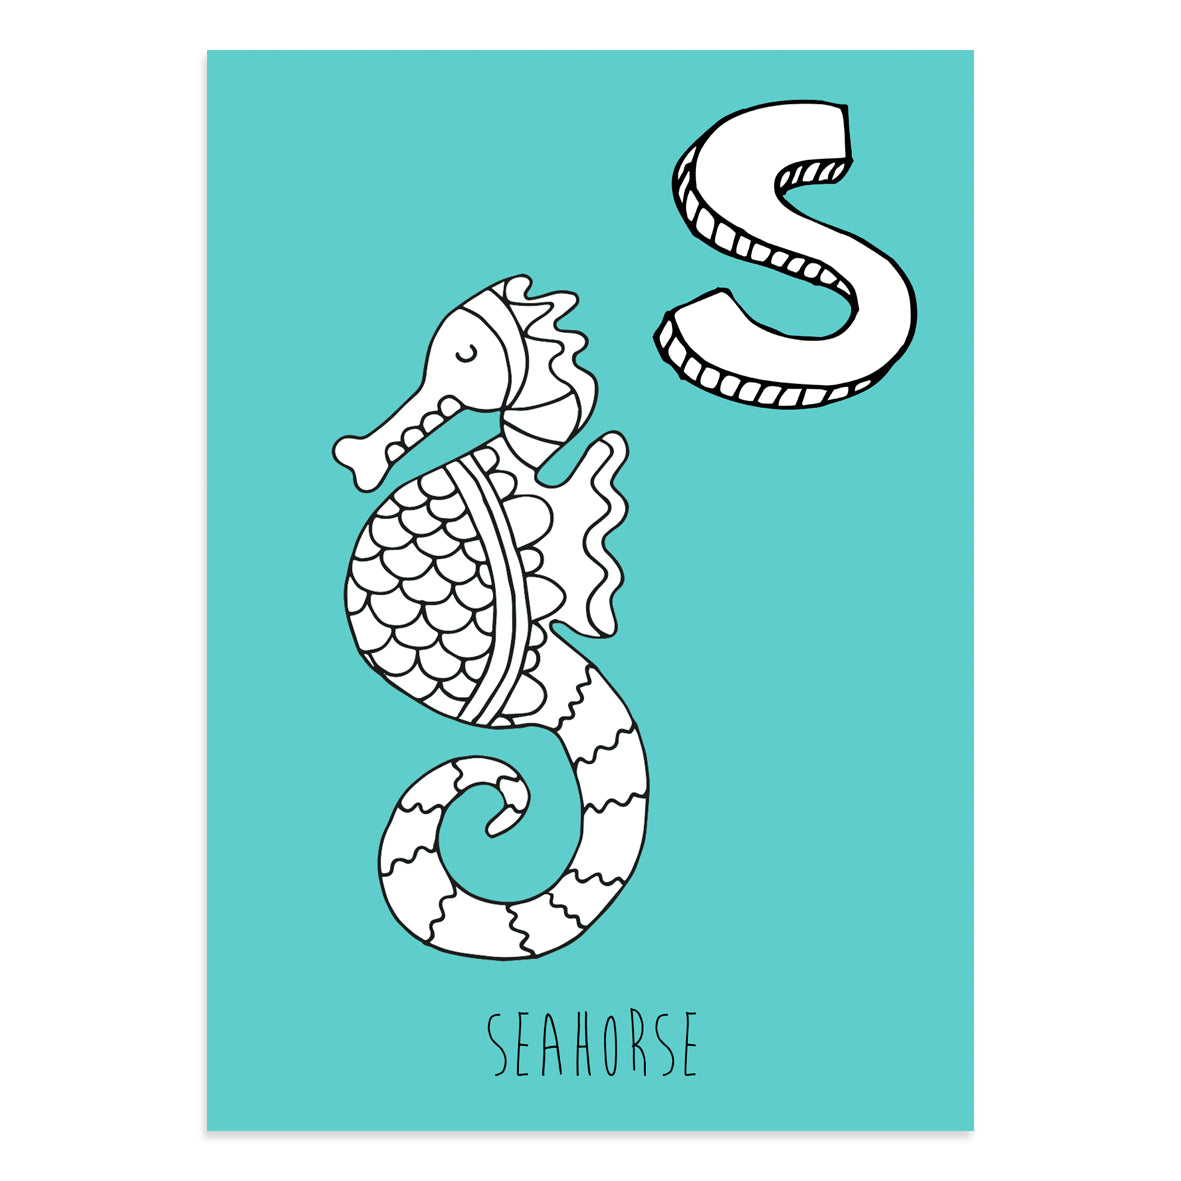 Turquoise postcard featuring the letter S for seahorse